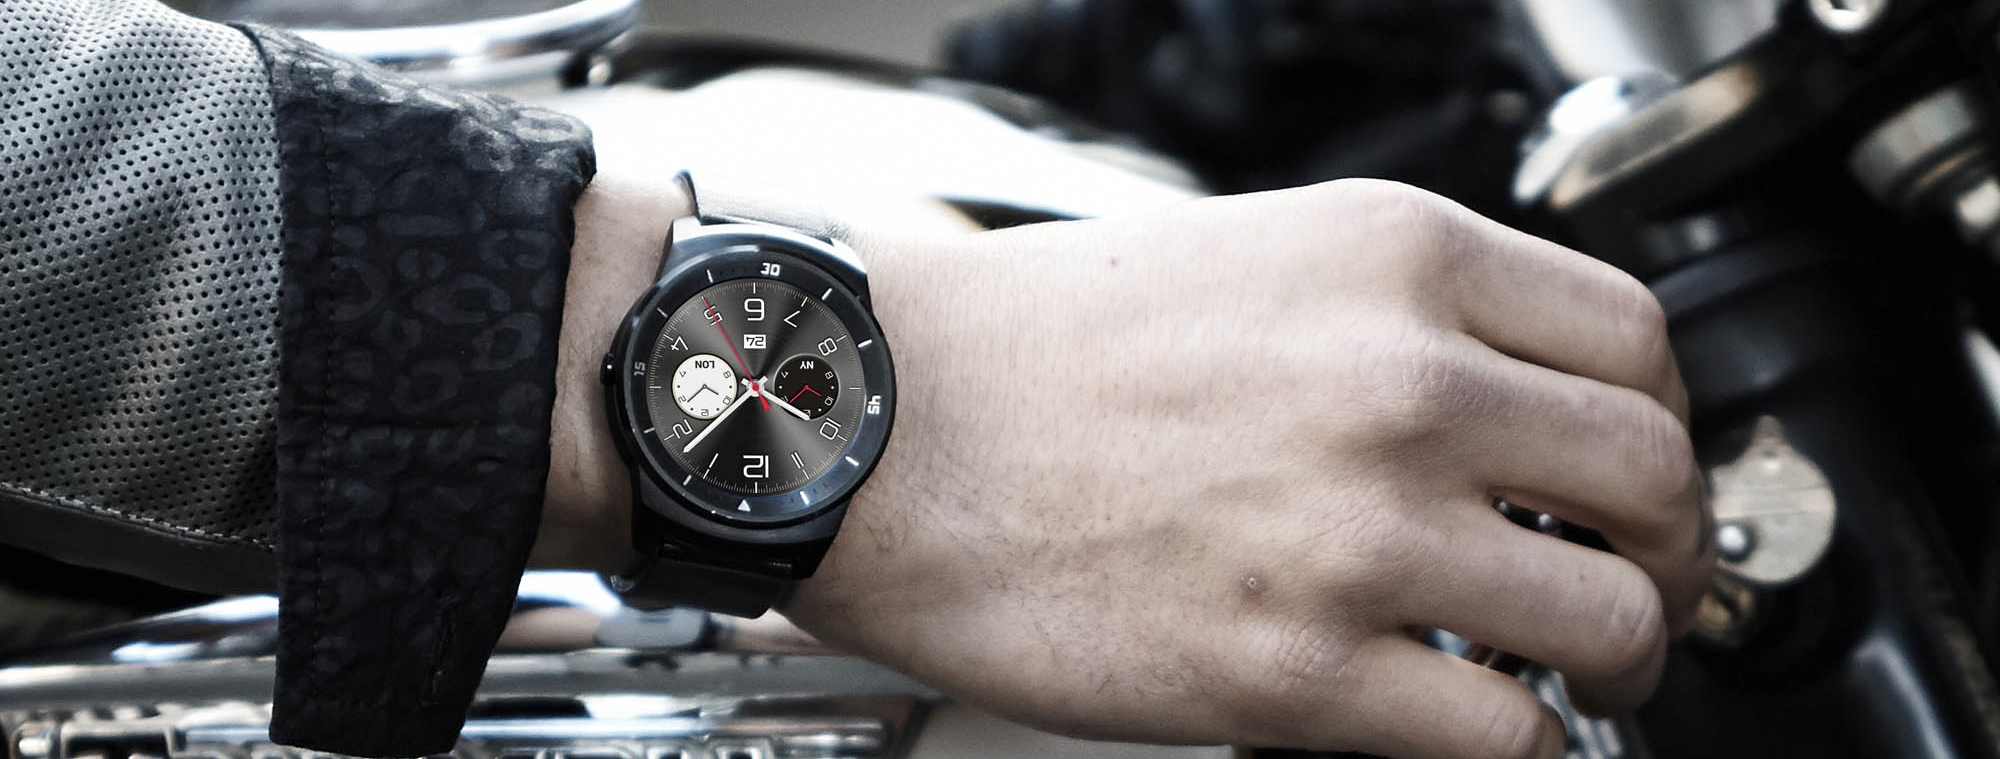 LG's new G Watch R is a stylish-looking smartwatch with a 1.3-inch circular screen